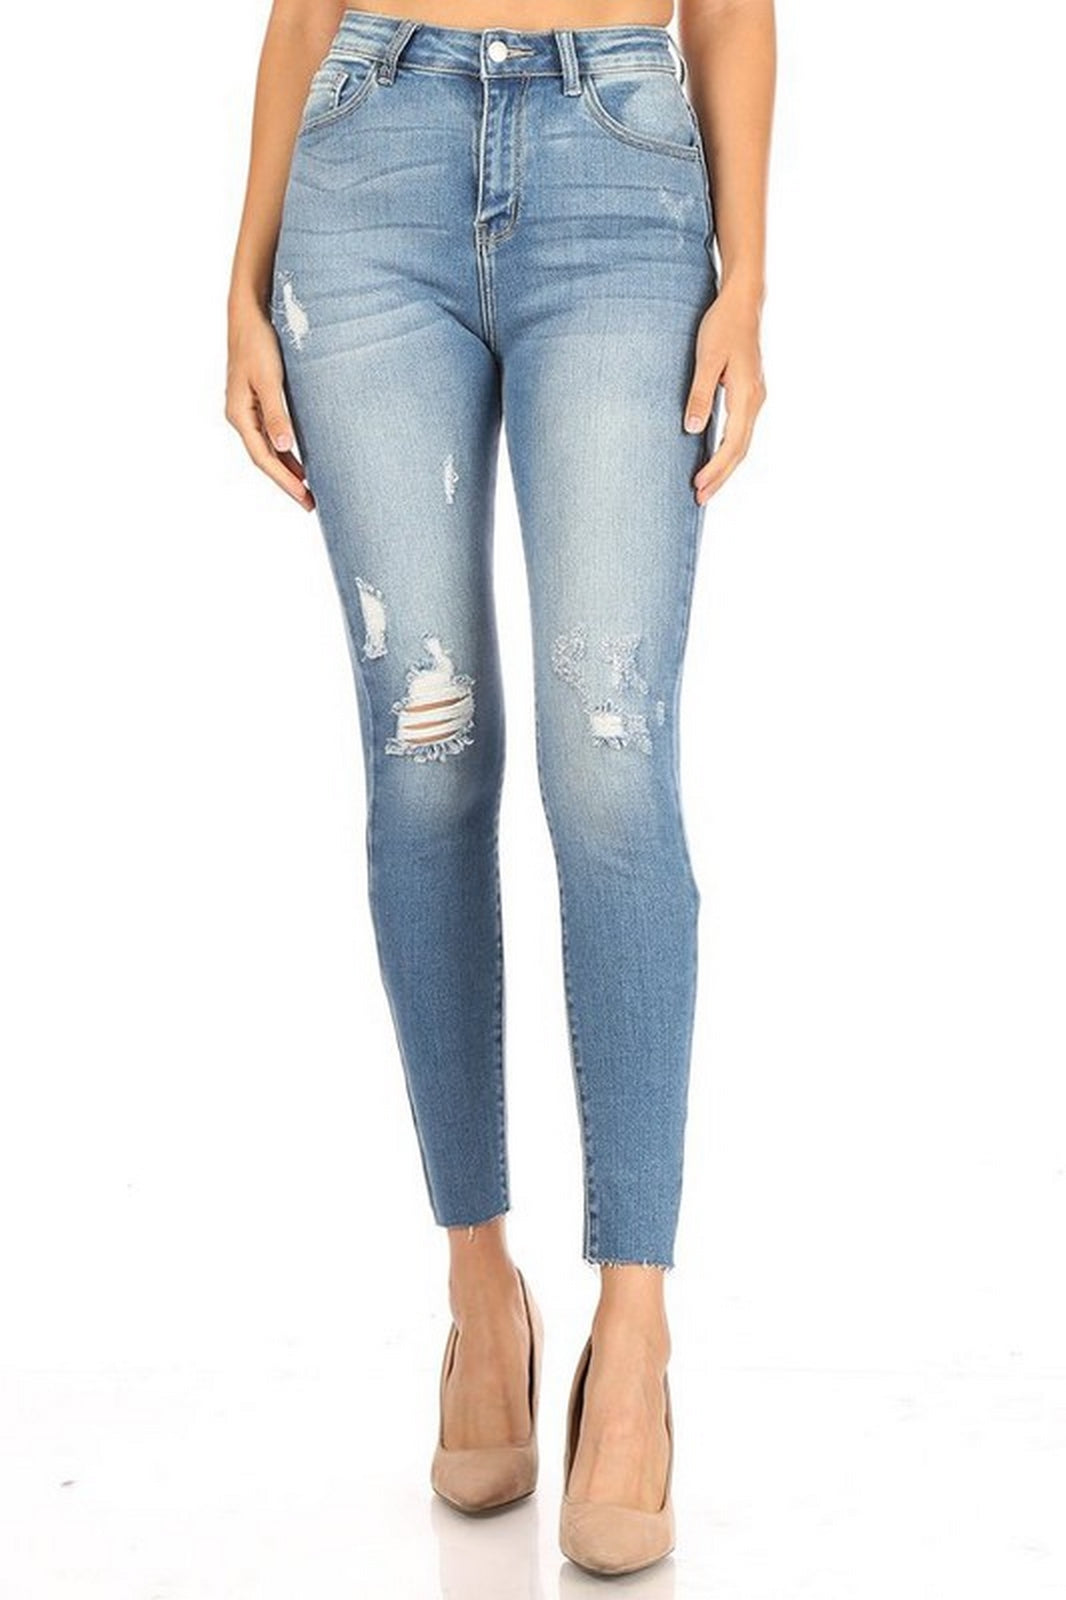 Encore Jeans High Waist Medium Wash V2013M